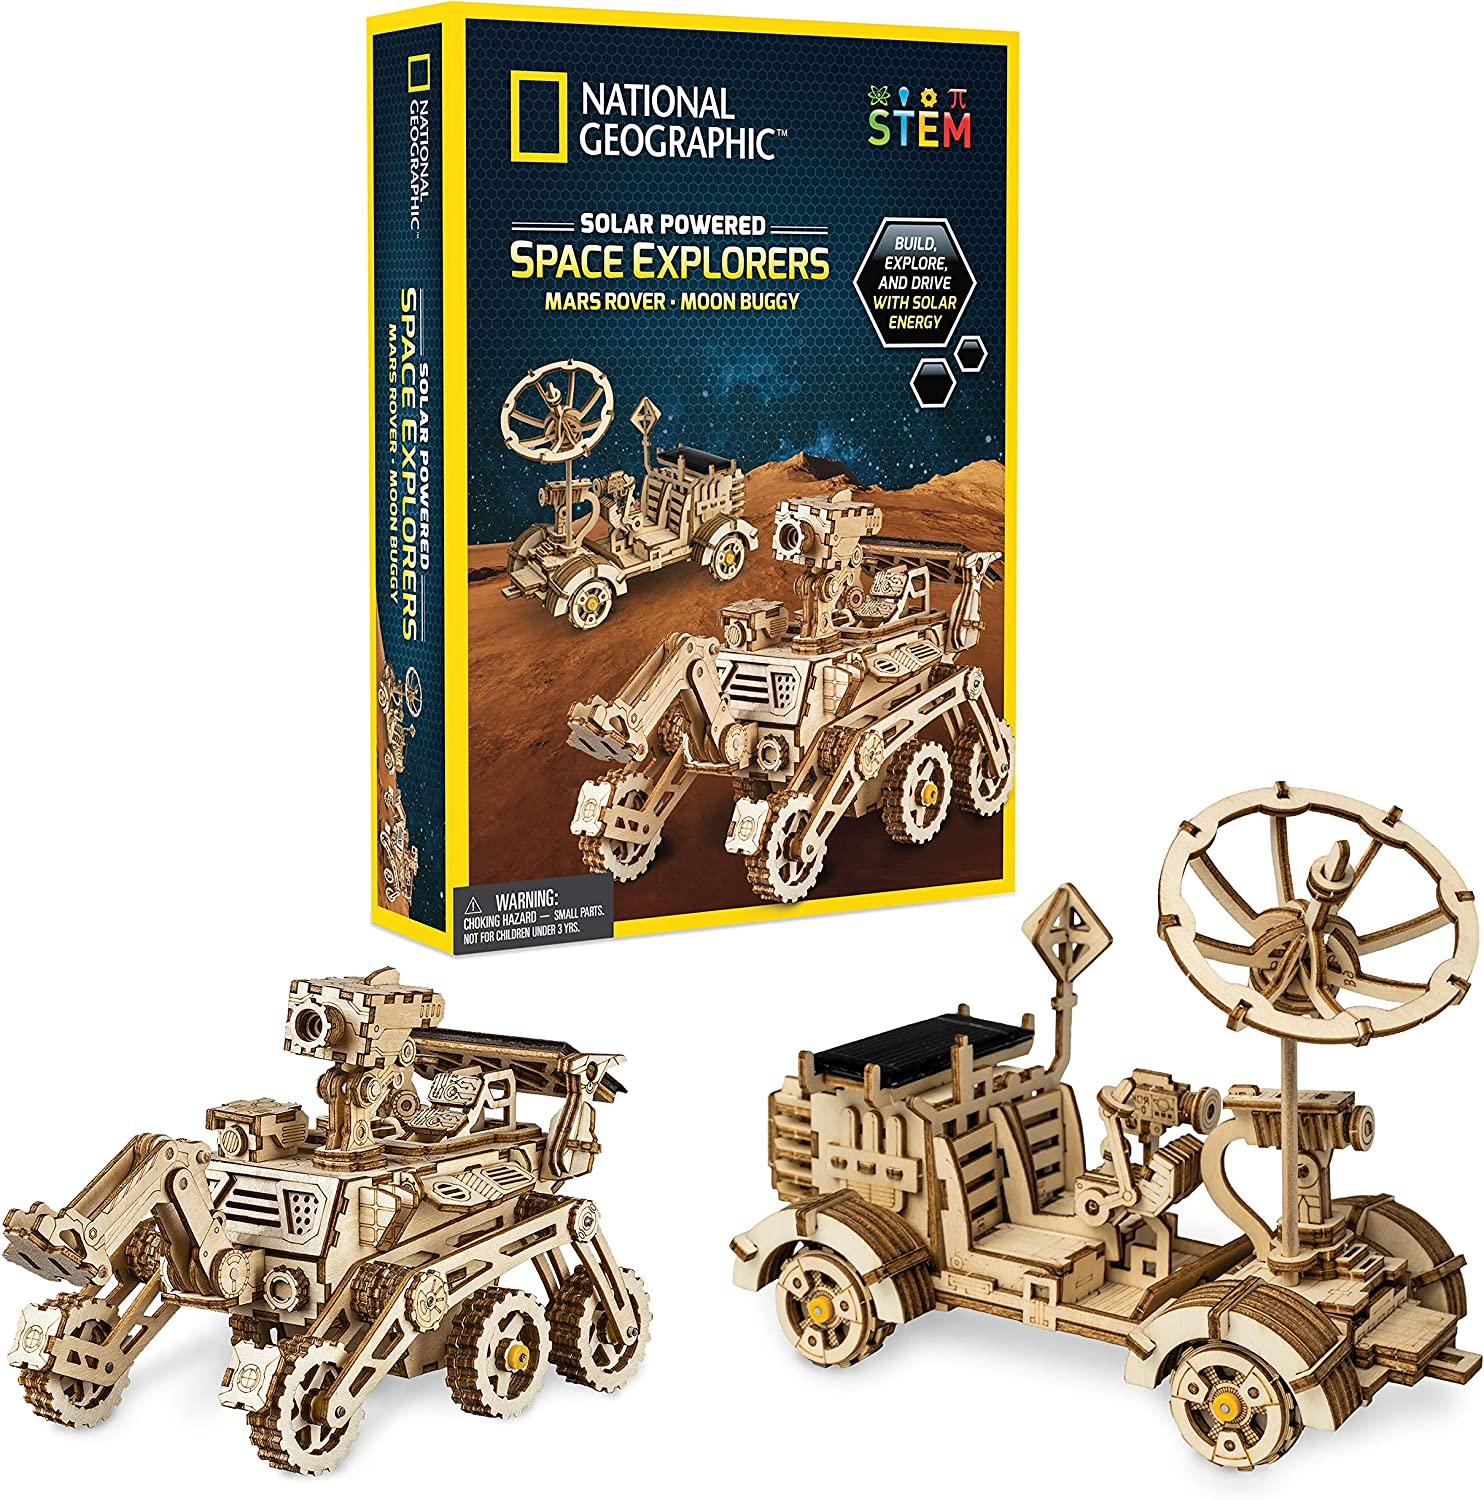 NATIONAL GEOGRAPHIC Solar Model Kit